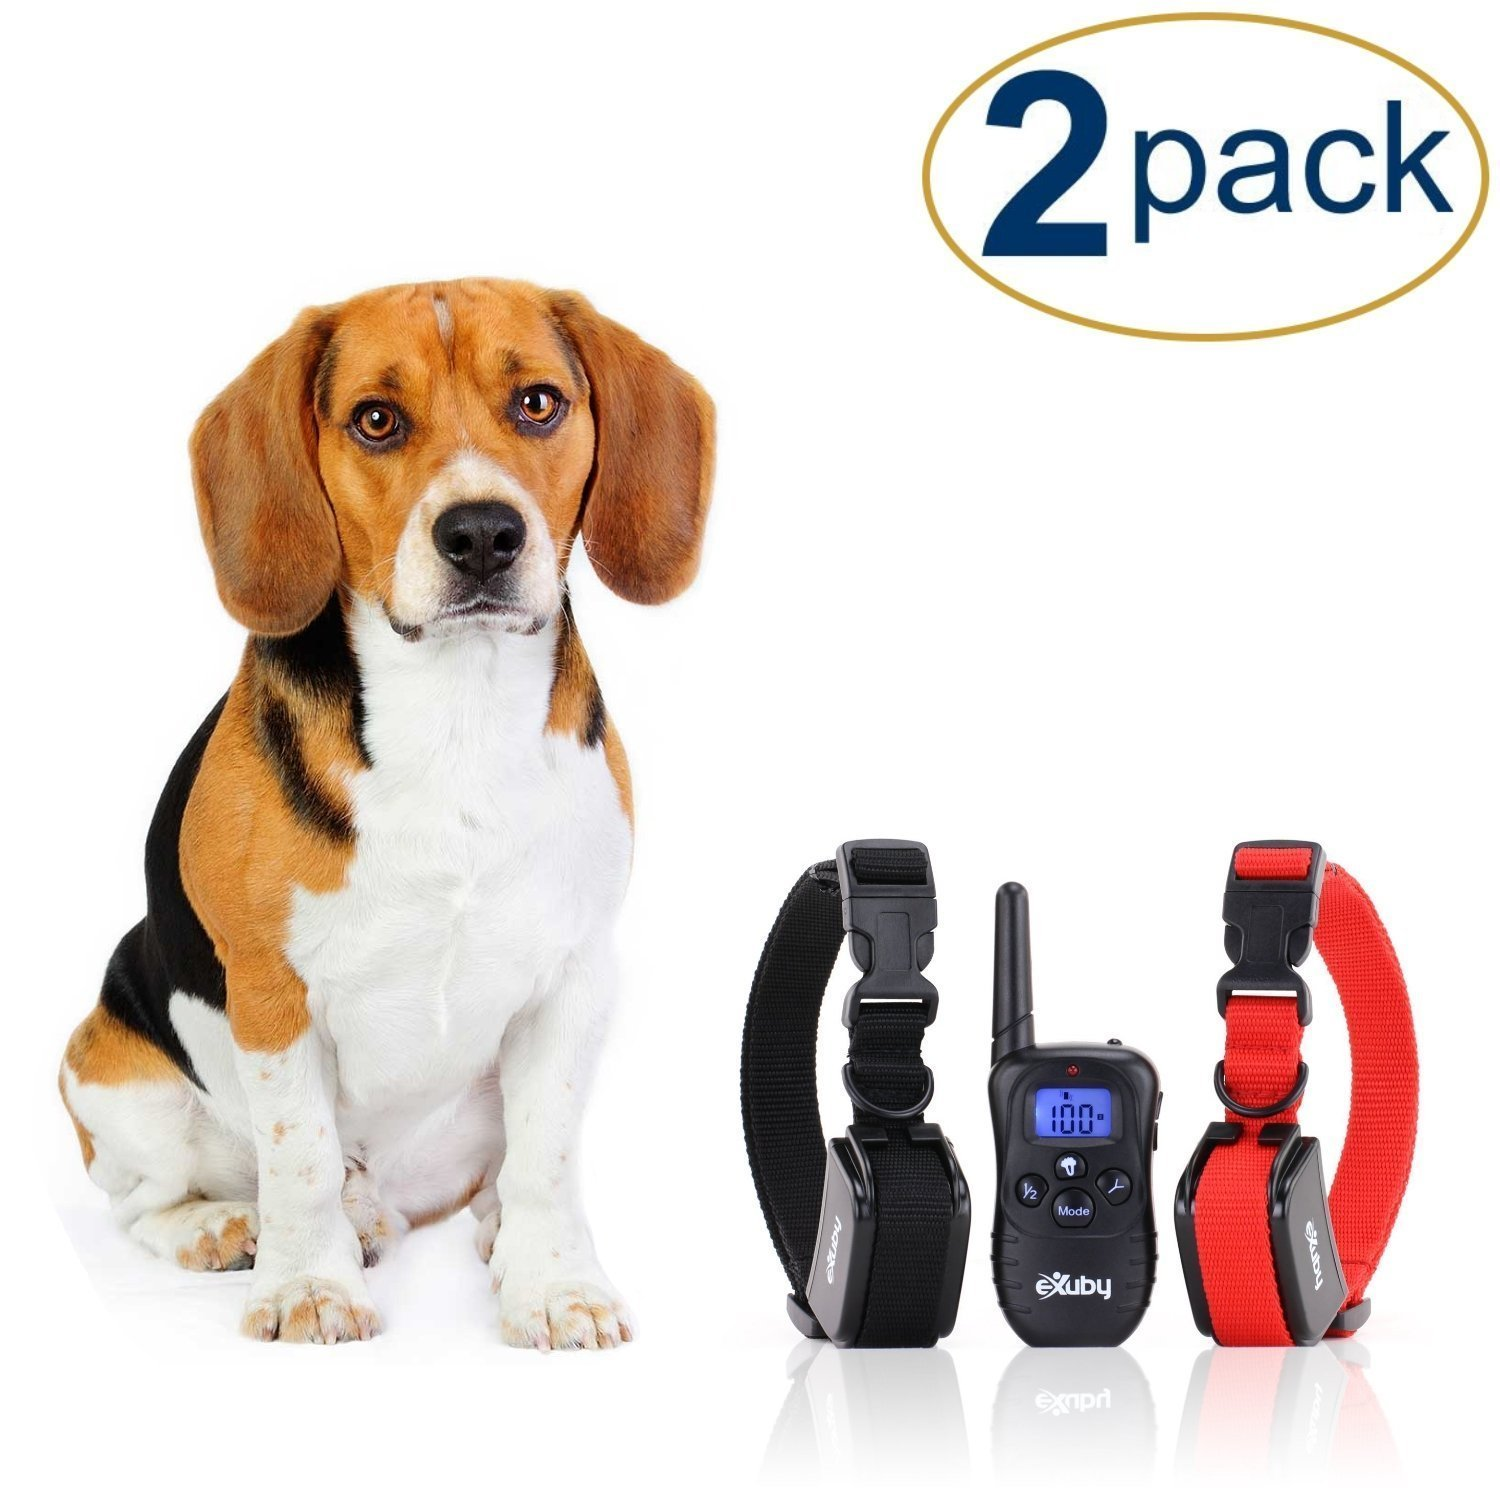 eXuby 2X Shock Collar for Small Dogs w/ 1 Remote & Training Dog Clicker - 3 Modes (Sound, Vibration & Shock) with Rechargeable Batteries - Fast Results by eXuby